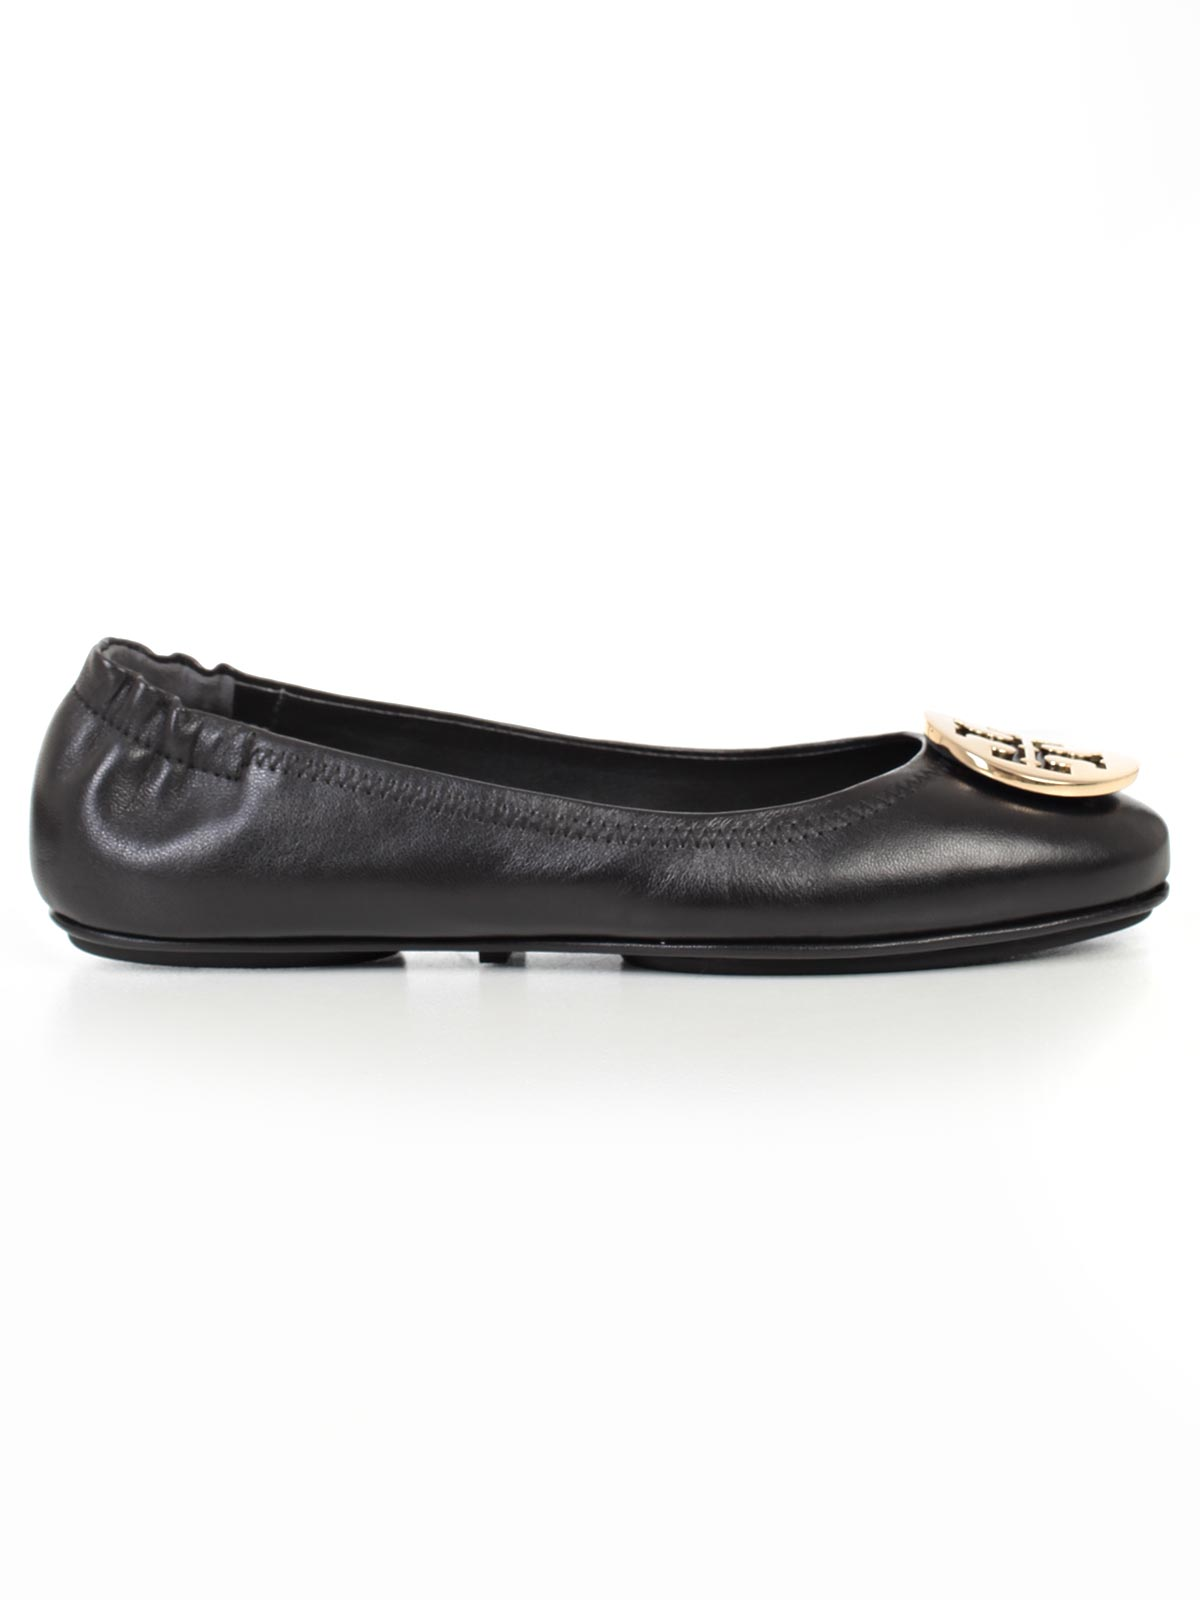 Picture of TORY BURCH Ballerinas